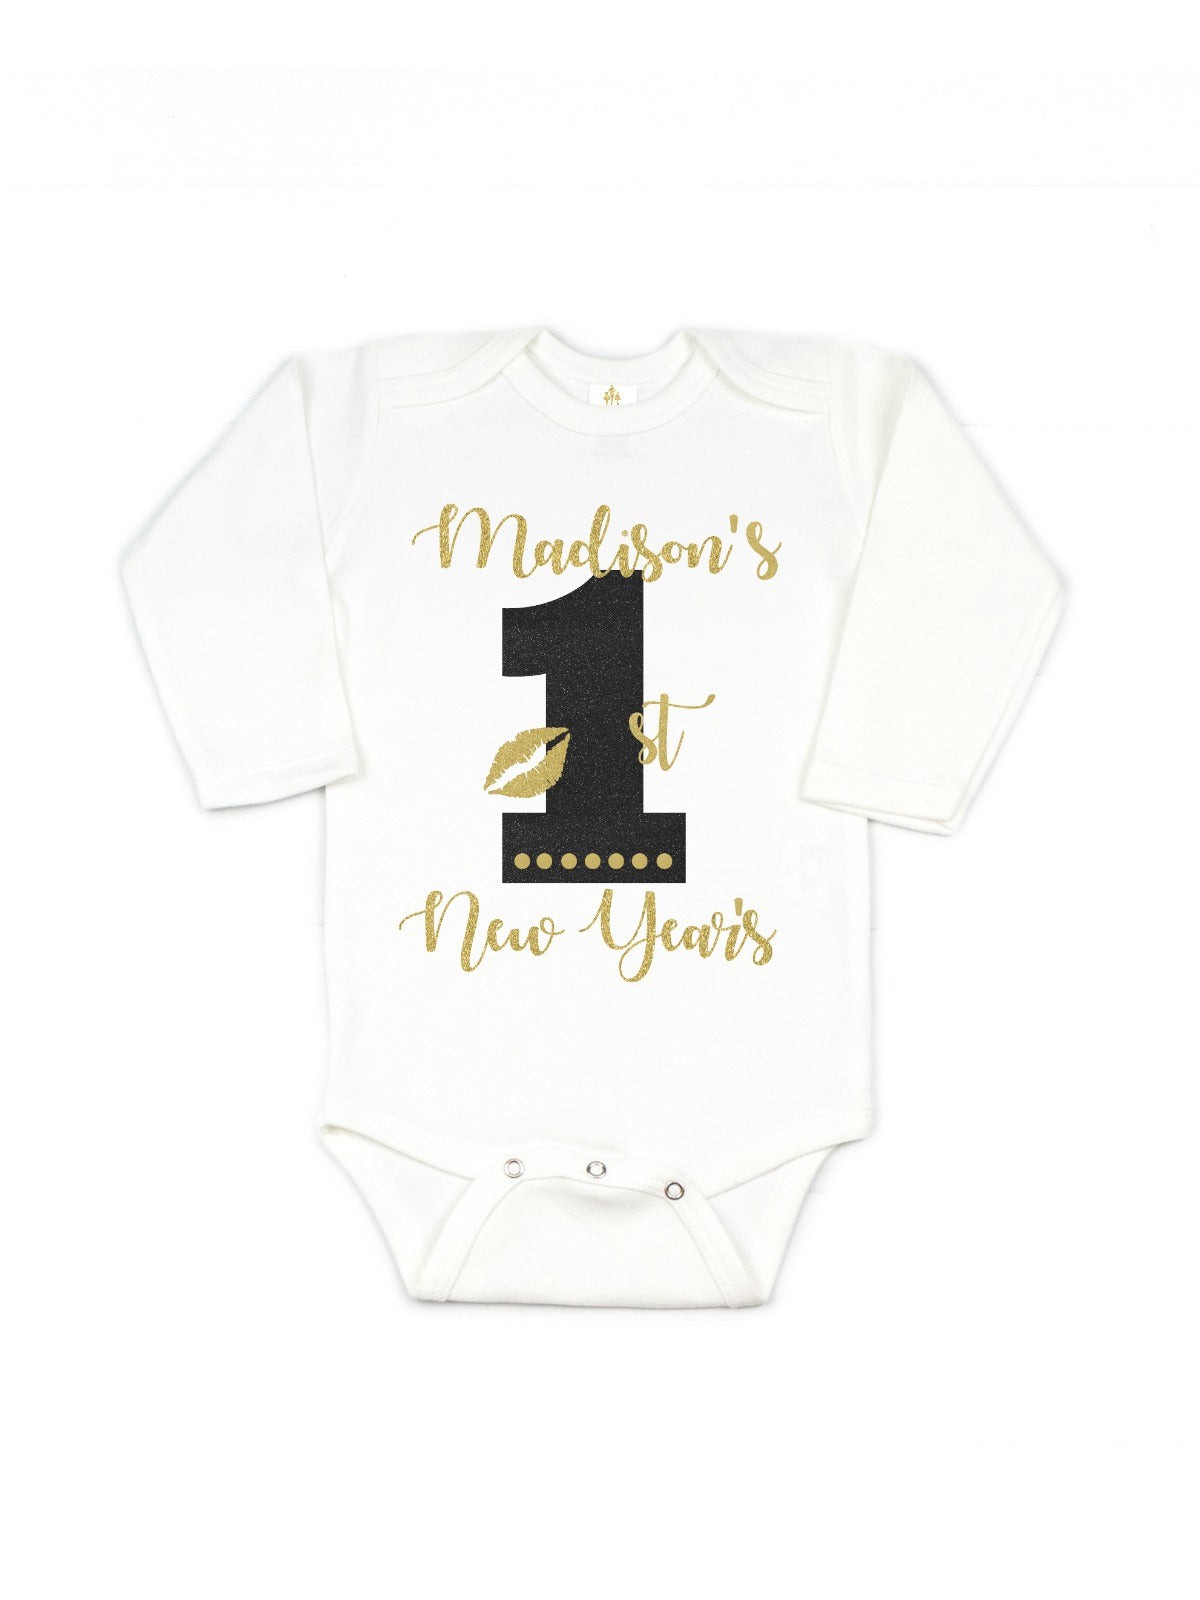 Handmade Products Clothing Shoes Accessories New Years Outfit Baby Girl 1st New Years Outfit New Years Tutu 1st New Years Shirt Baby Girl New Years Its My 1st New Year Outfit